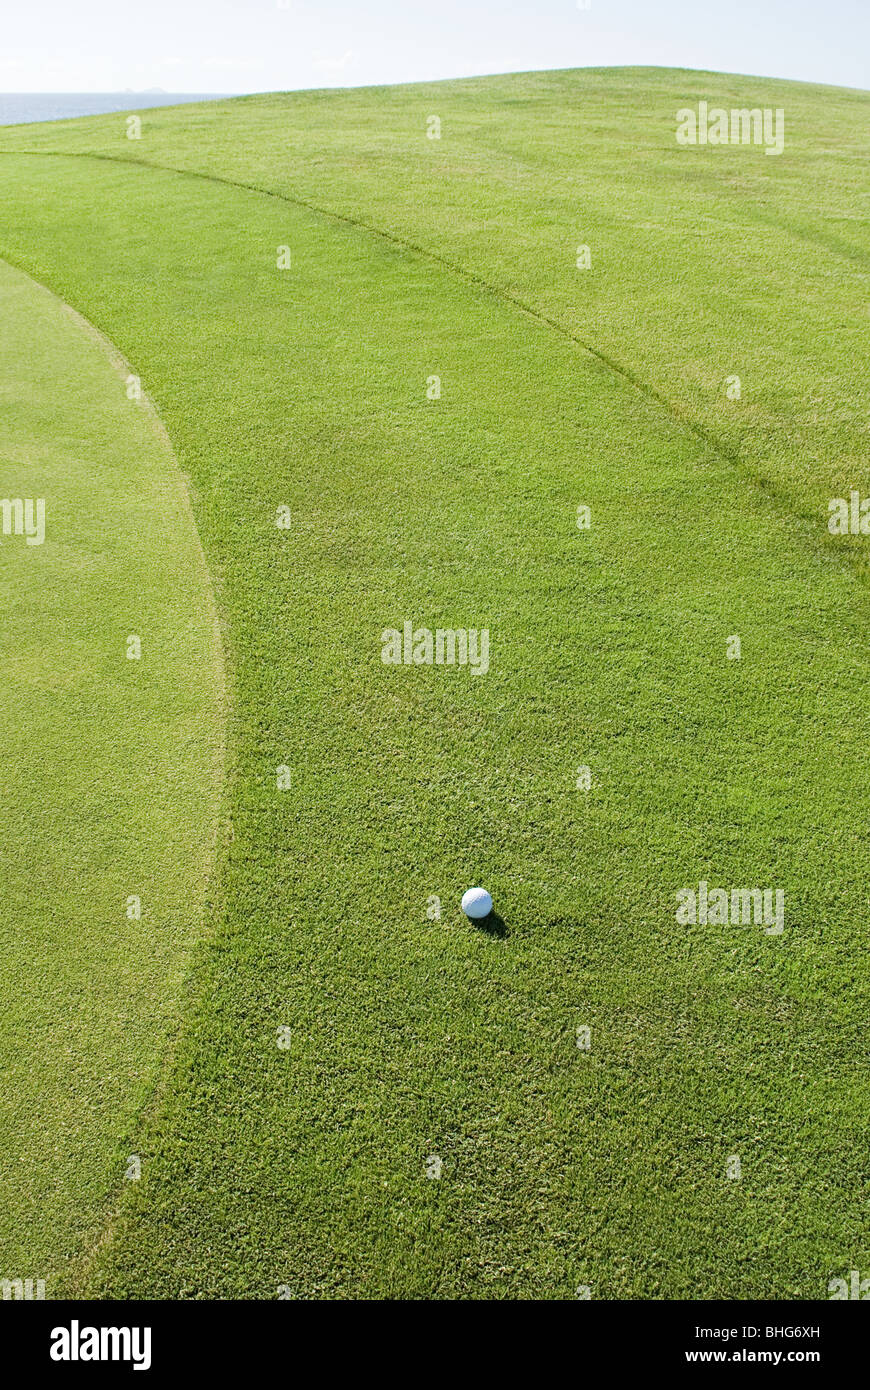 Golf ball on golf course - Stock Image